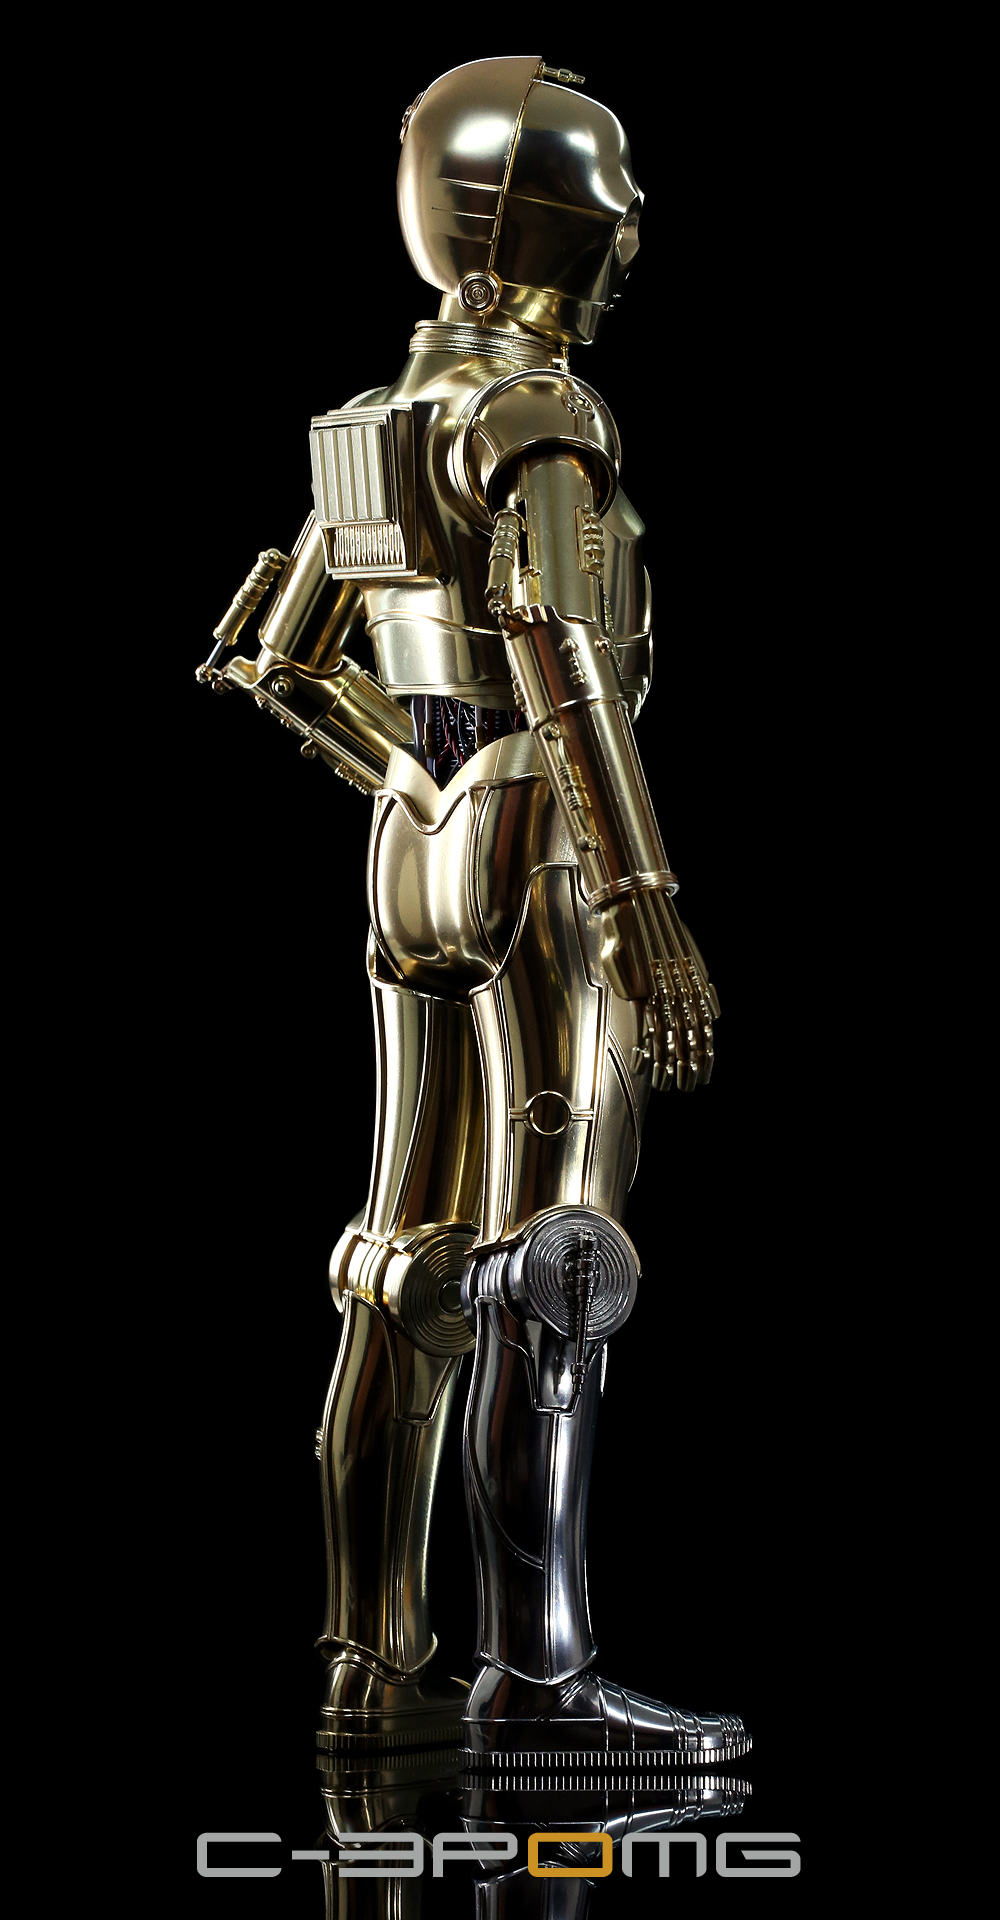 [Bandai] Star Wars: C-3PO - Perfect Model 1/6 scale - LANÇADO!!! - Página 2 C-3PO1205_zps57d65ae7